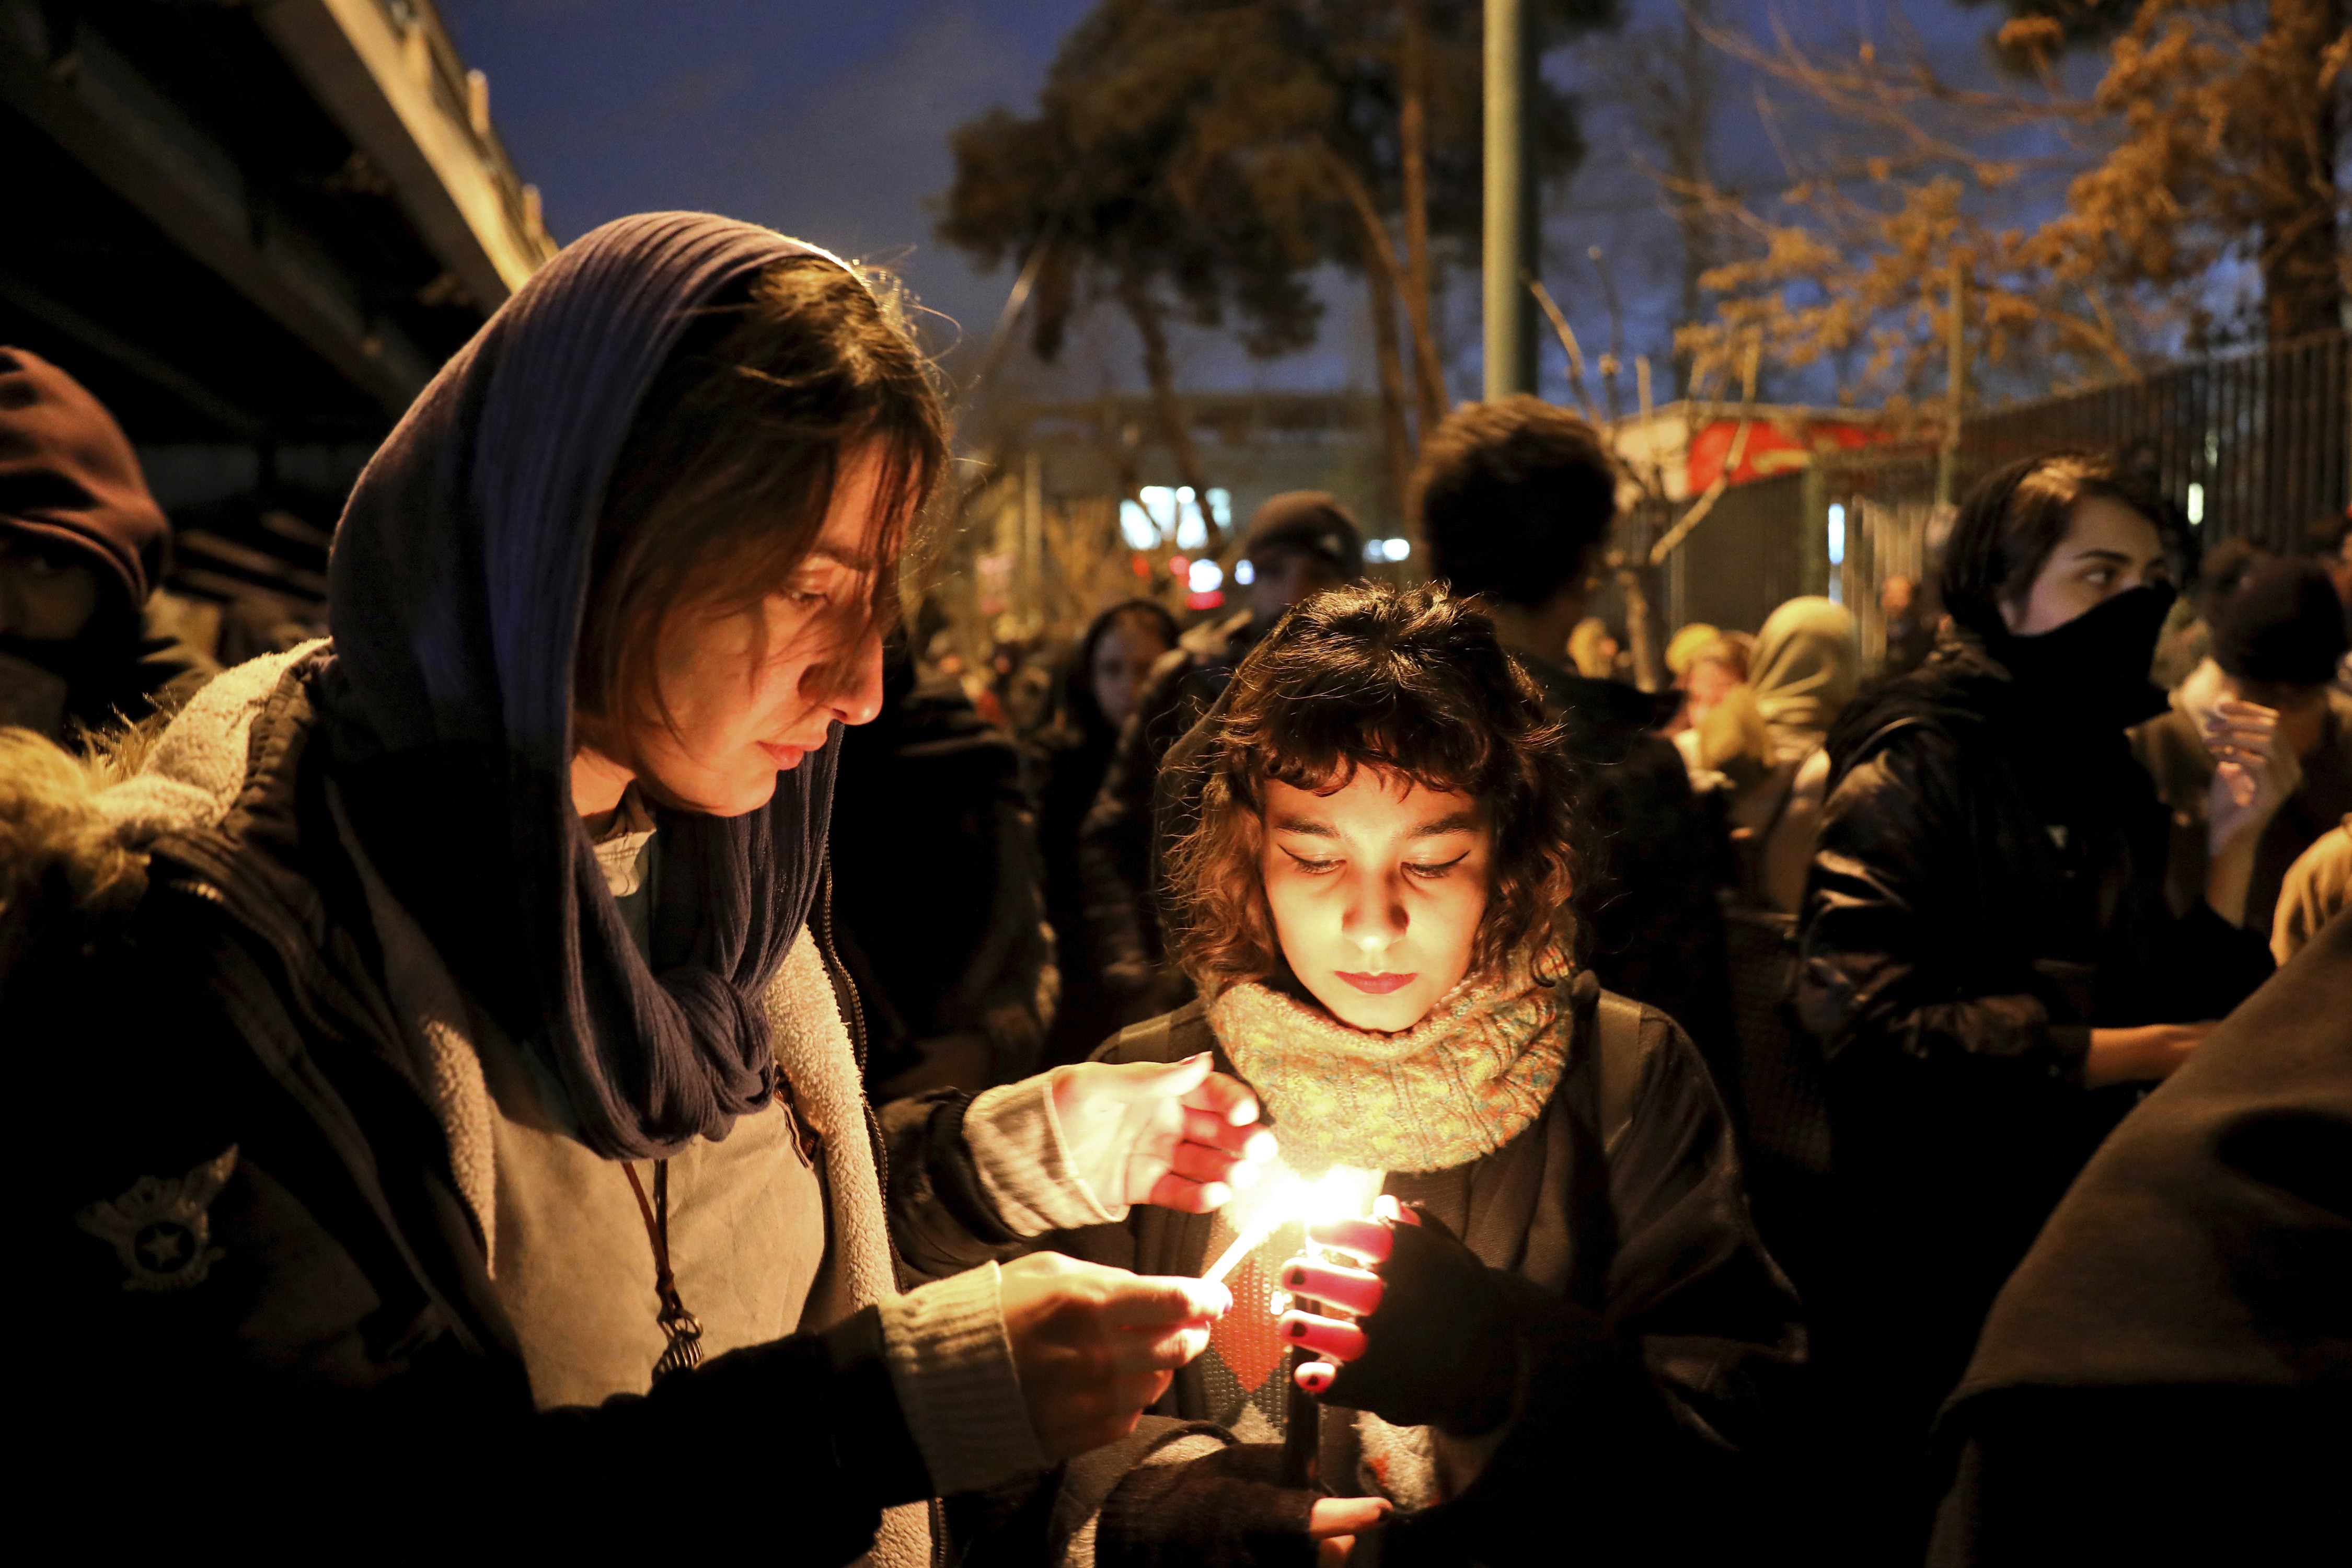 People gather for a candlelight vigil to remember the victims of the Ukraine plane crash in Tehran, Iran, on Saturday, January 11.